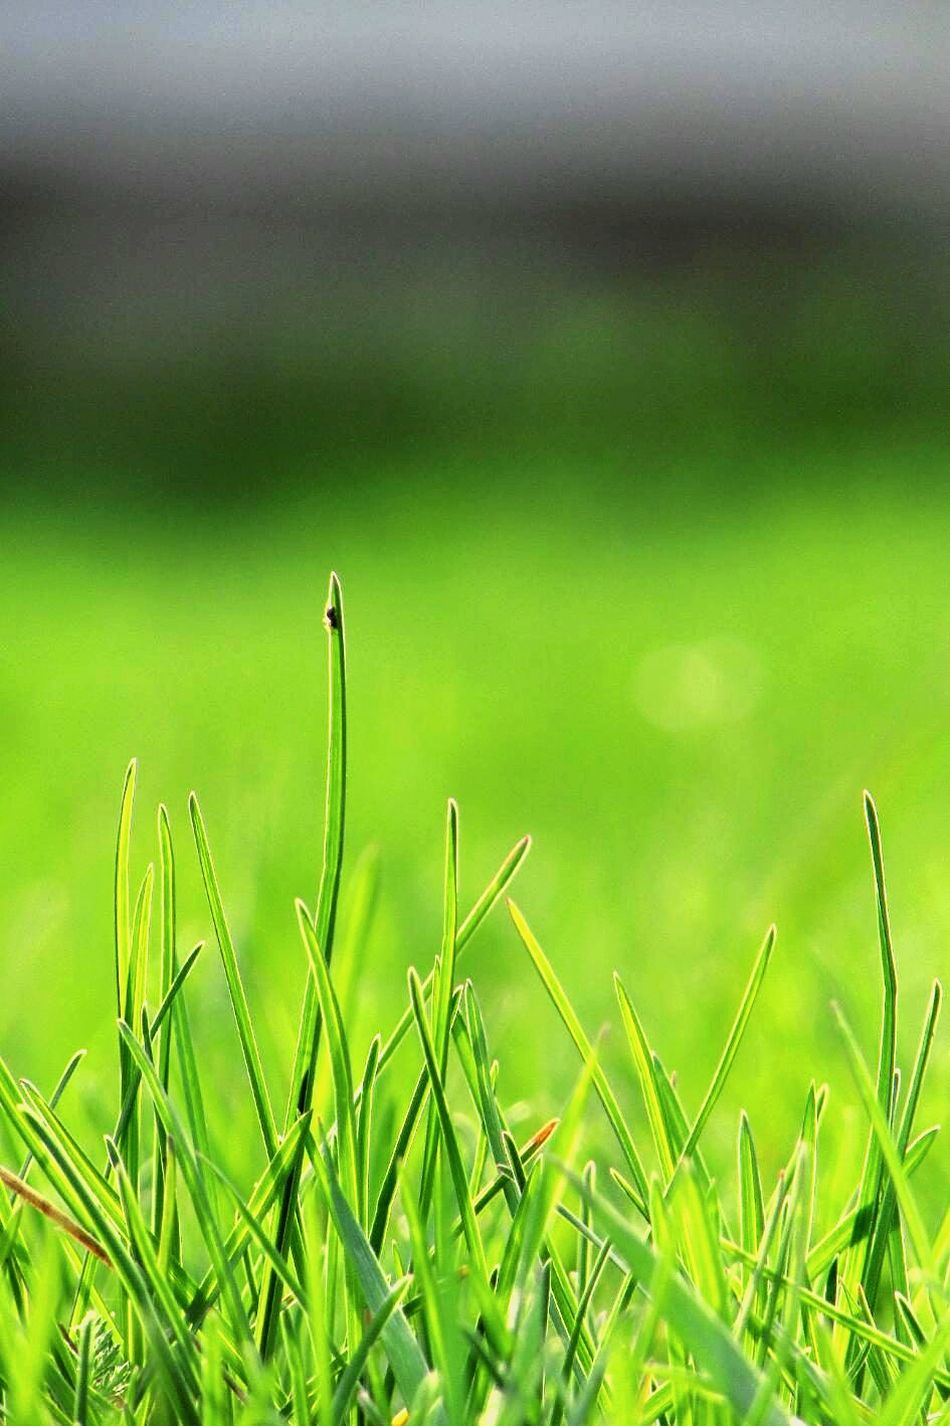 Growth Nature Green Color Field Cereal Plant Outdoors No People Beauty In Nature Rural Scene Day Grass Close-up Wheat Agriculture Freshness Like4l Photoshoot Photography Followback Beauty Followme Like4like Photooftheday Like Followtofollowback